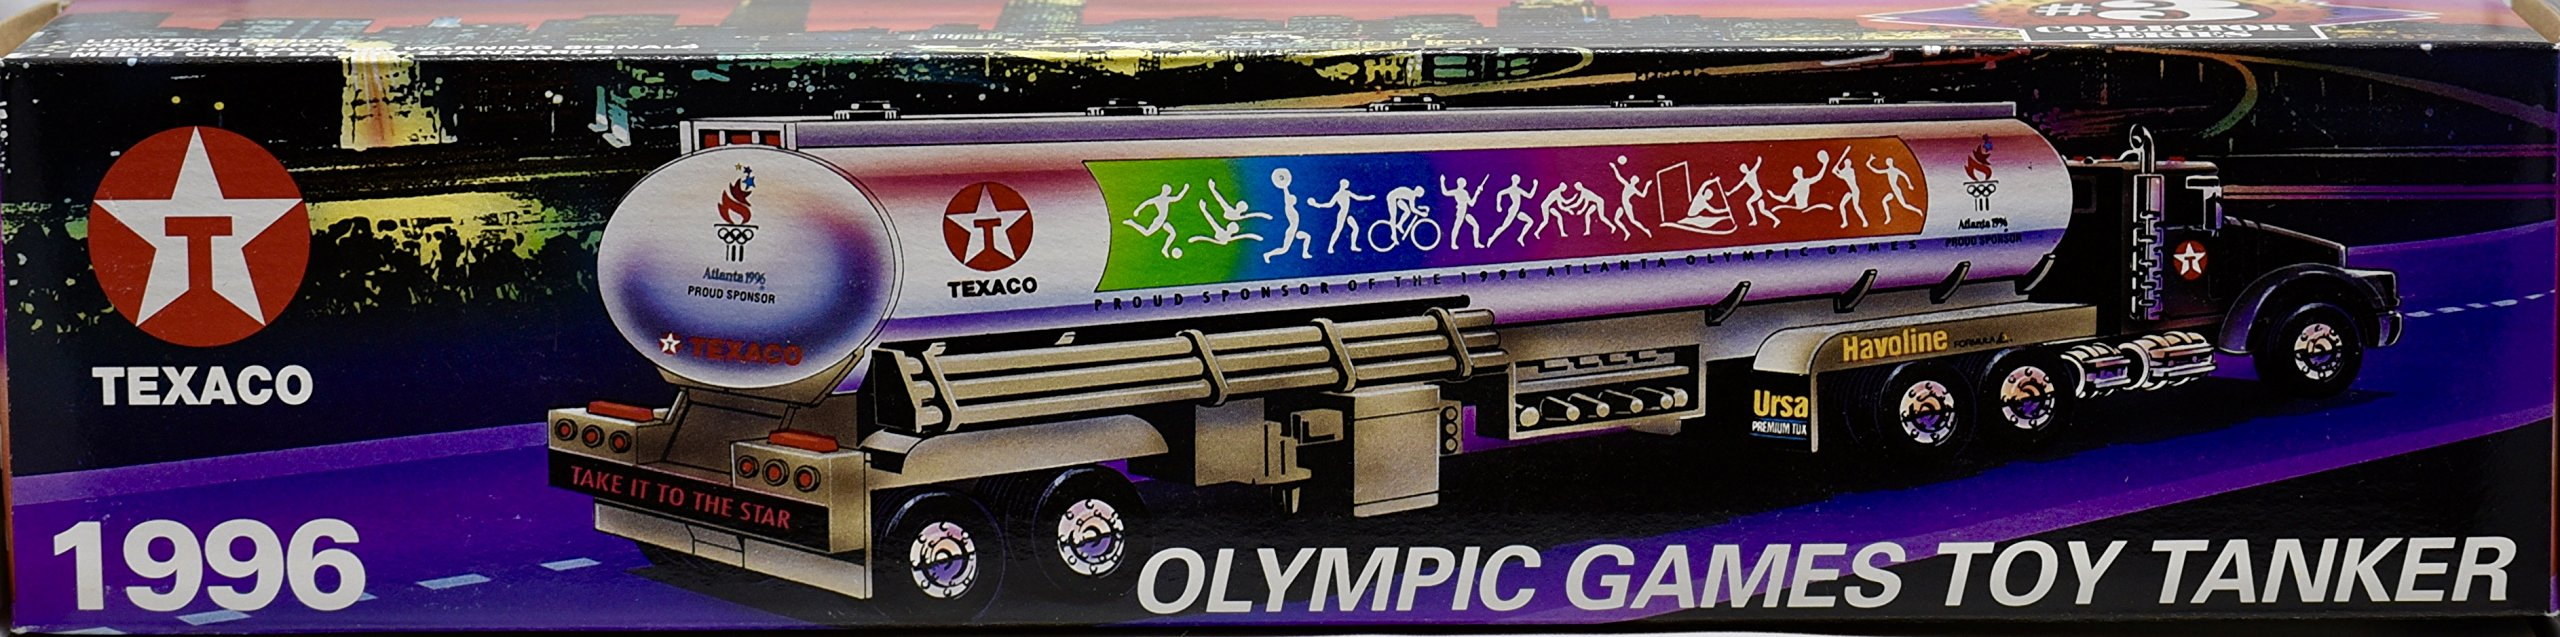 1996 - Texaco : #3 Collector Series - Olympic Games Toy Tanker - Working Lights / Horn & Backing Alerts - 14 Inches - OOP - New - Collectible